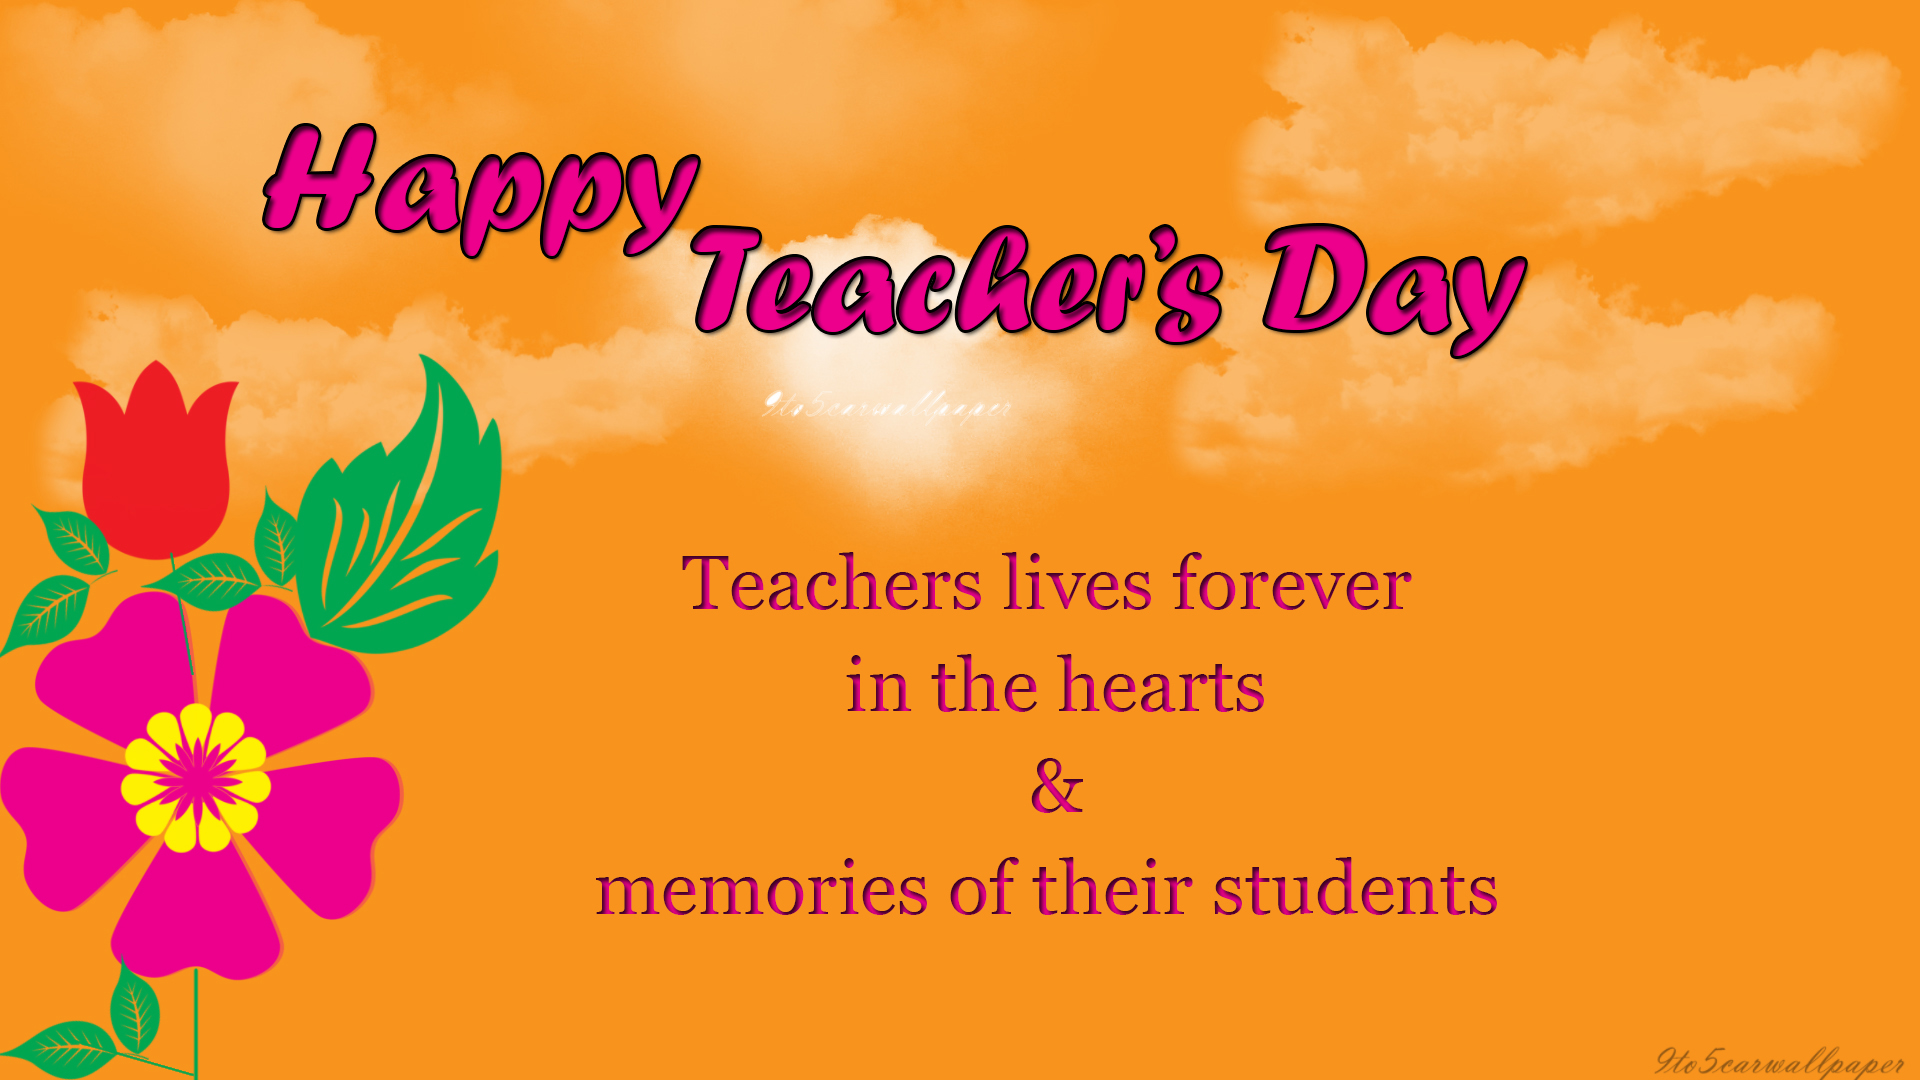 happy-teachers-day-posters-wallpapers-wishes-cards-images-2017